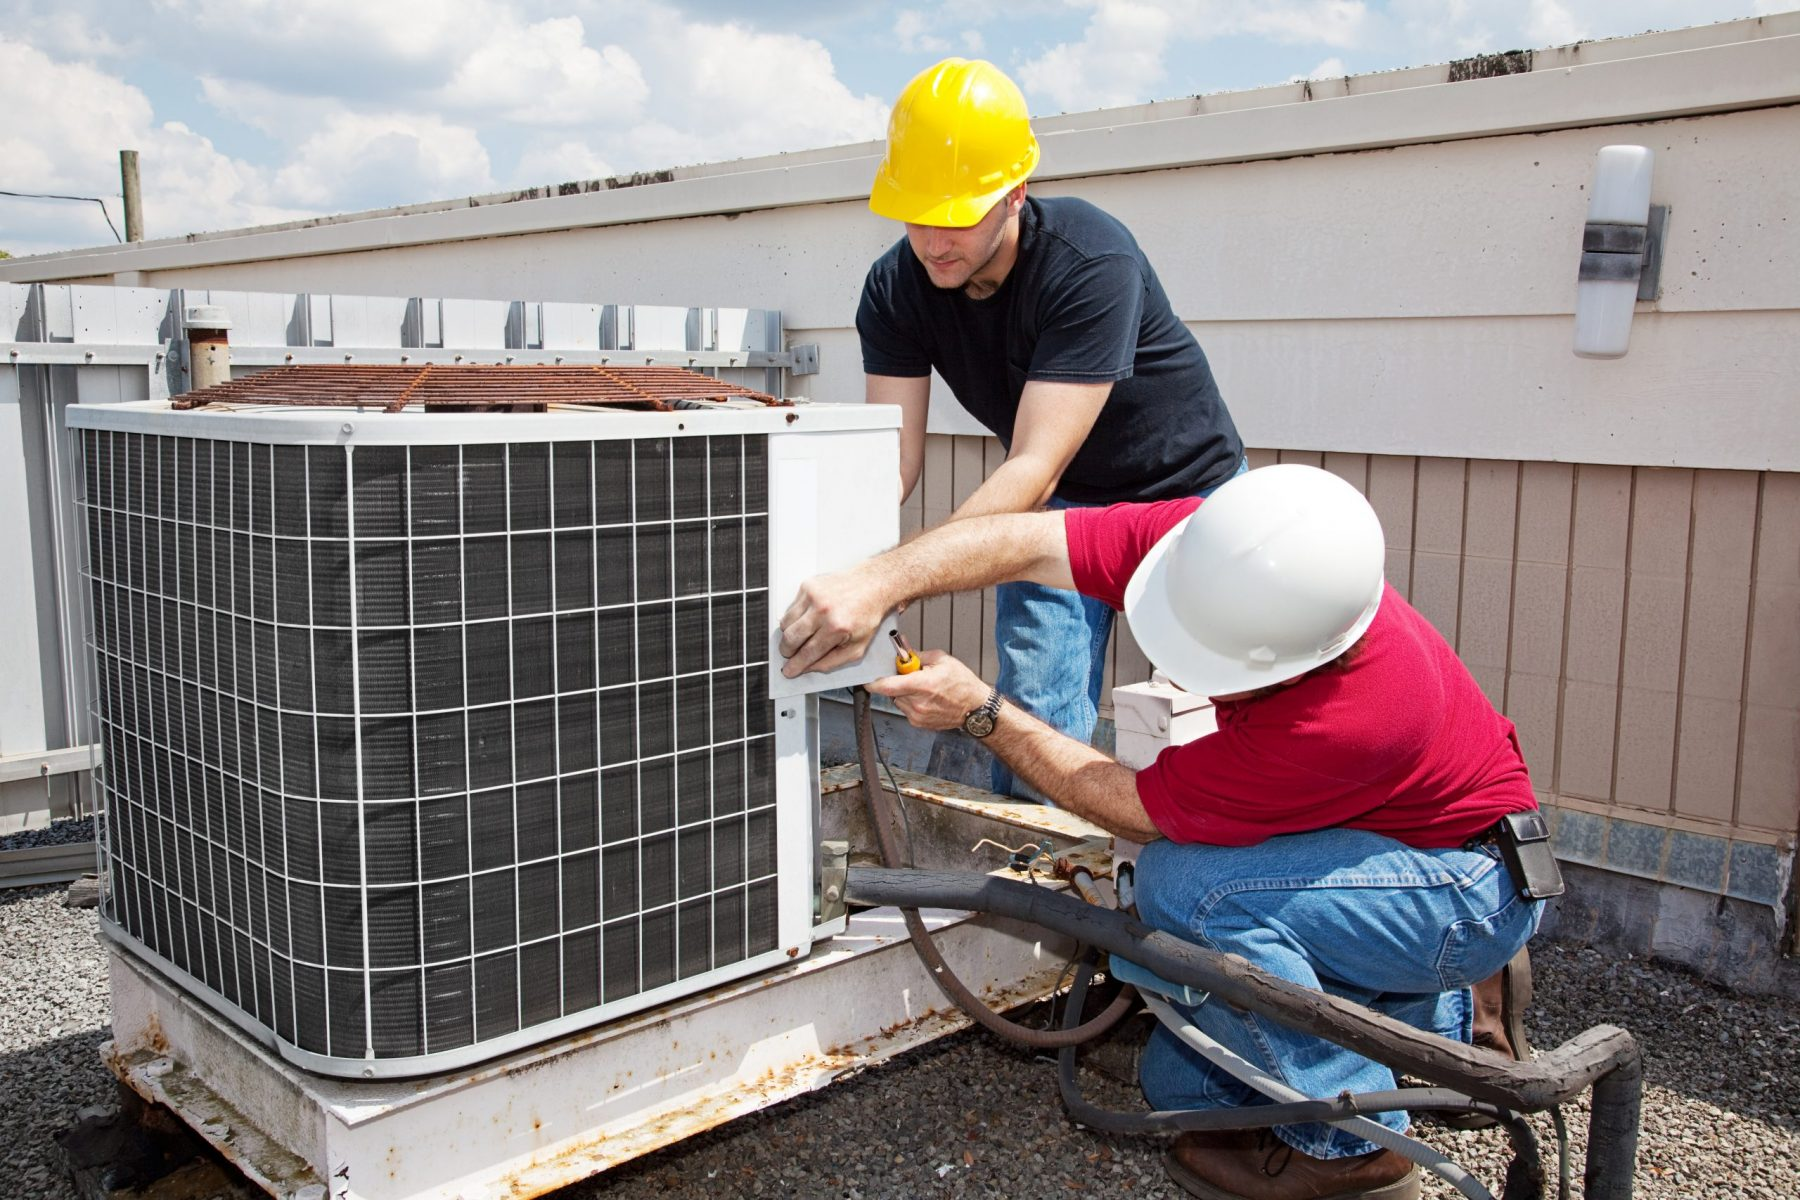 Two workers on the roof of a building working on the HVAC unit